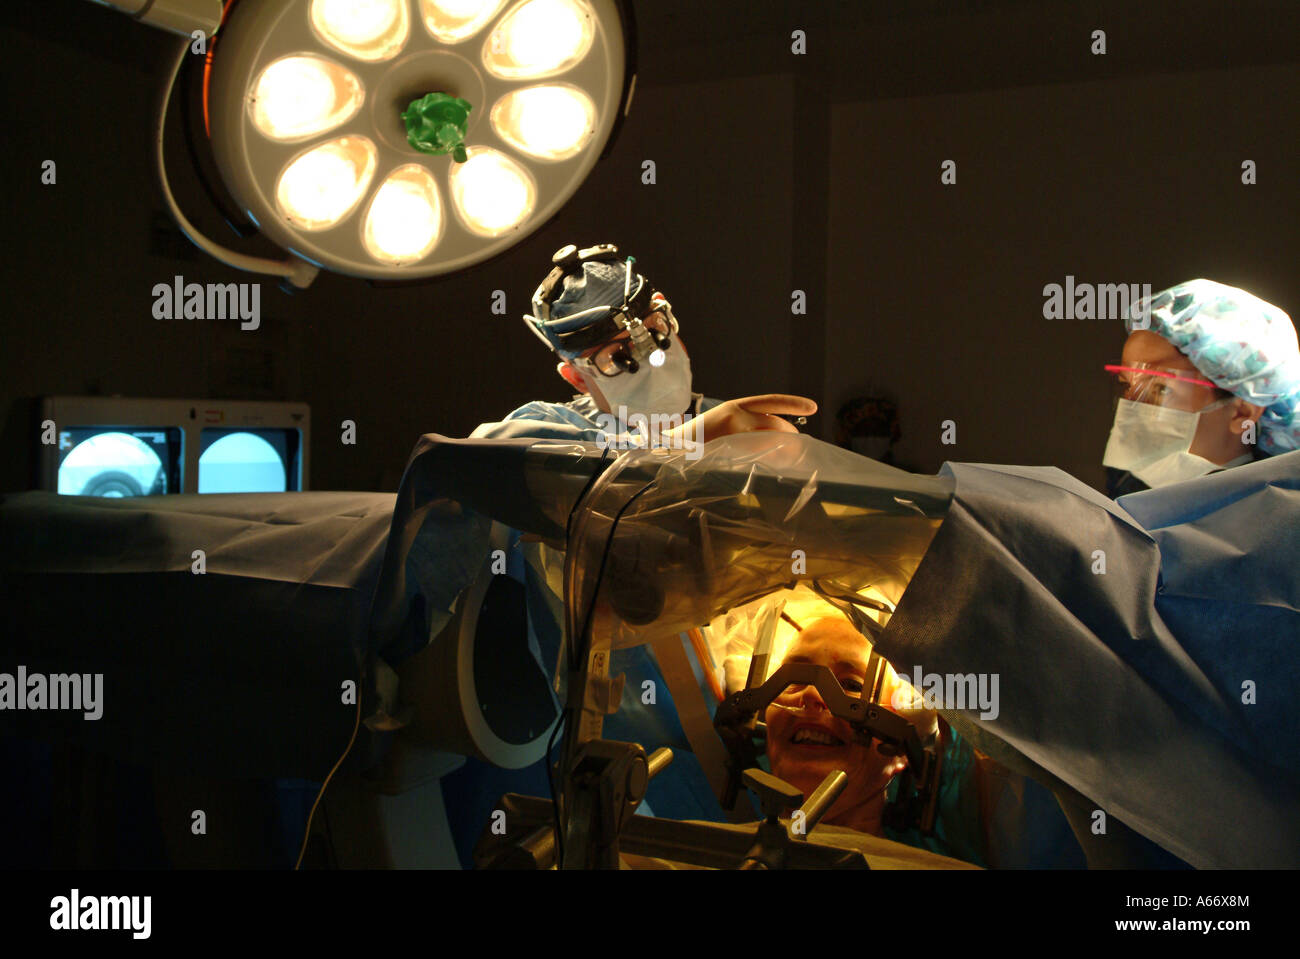 brain-surgeon-performs-a-delicate-brain-procedure-on-an-awake-patient-A66X8M.jpg